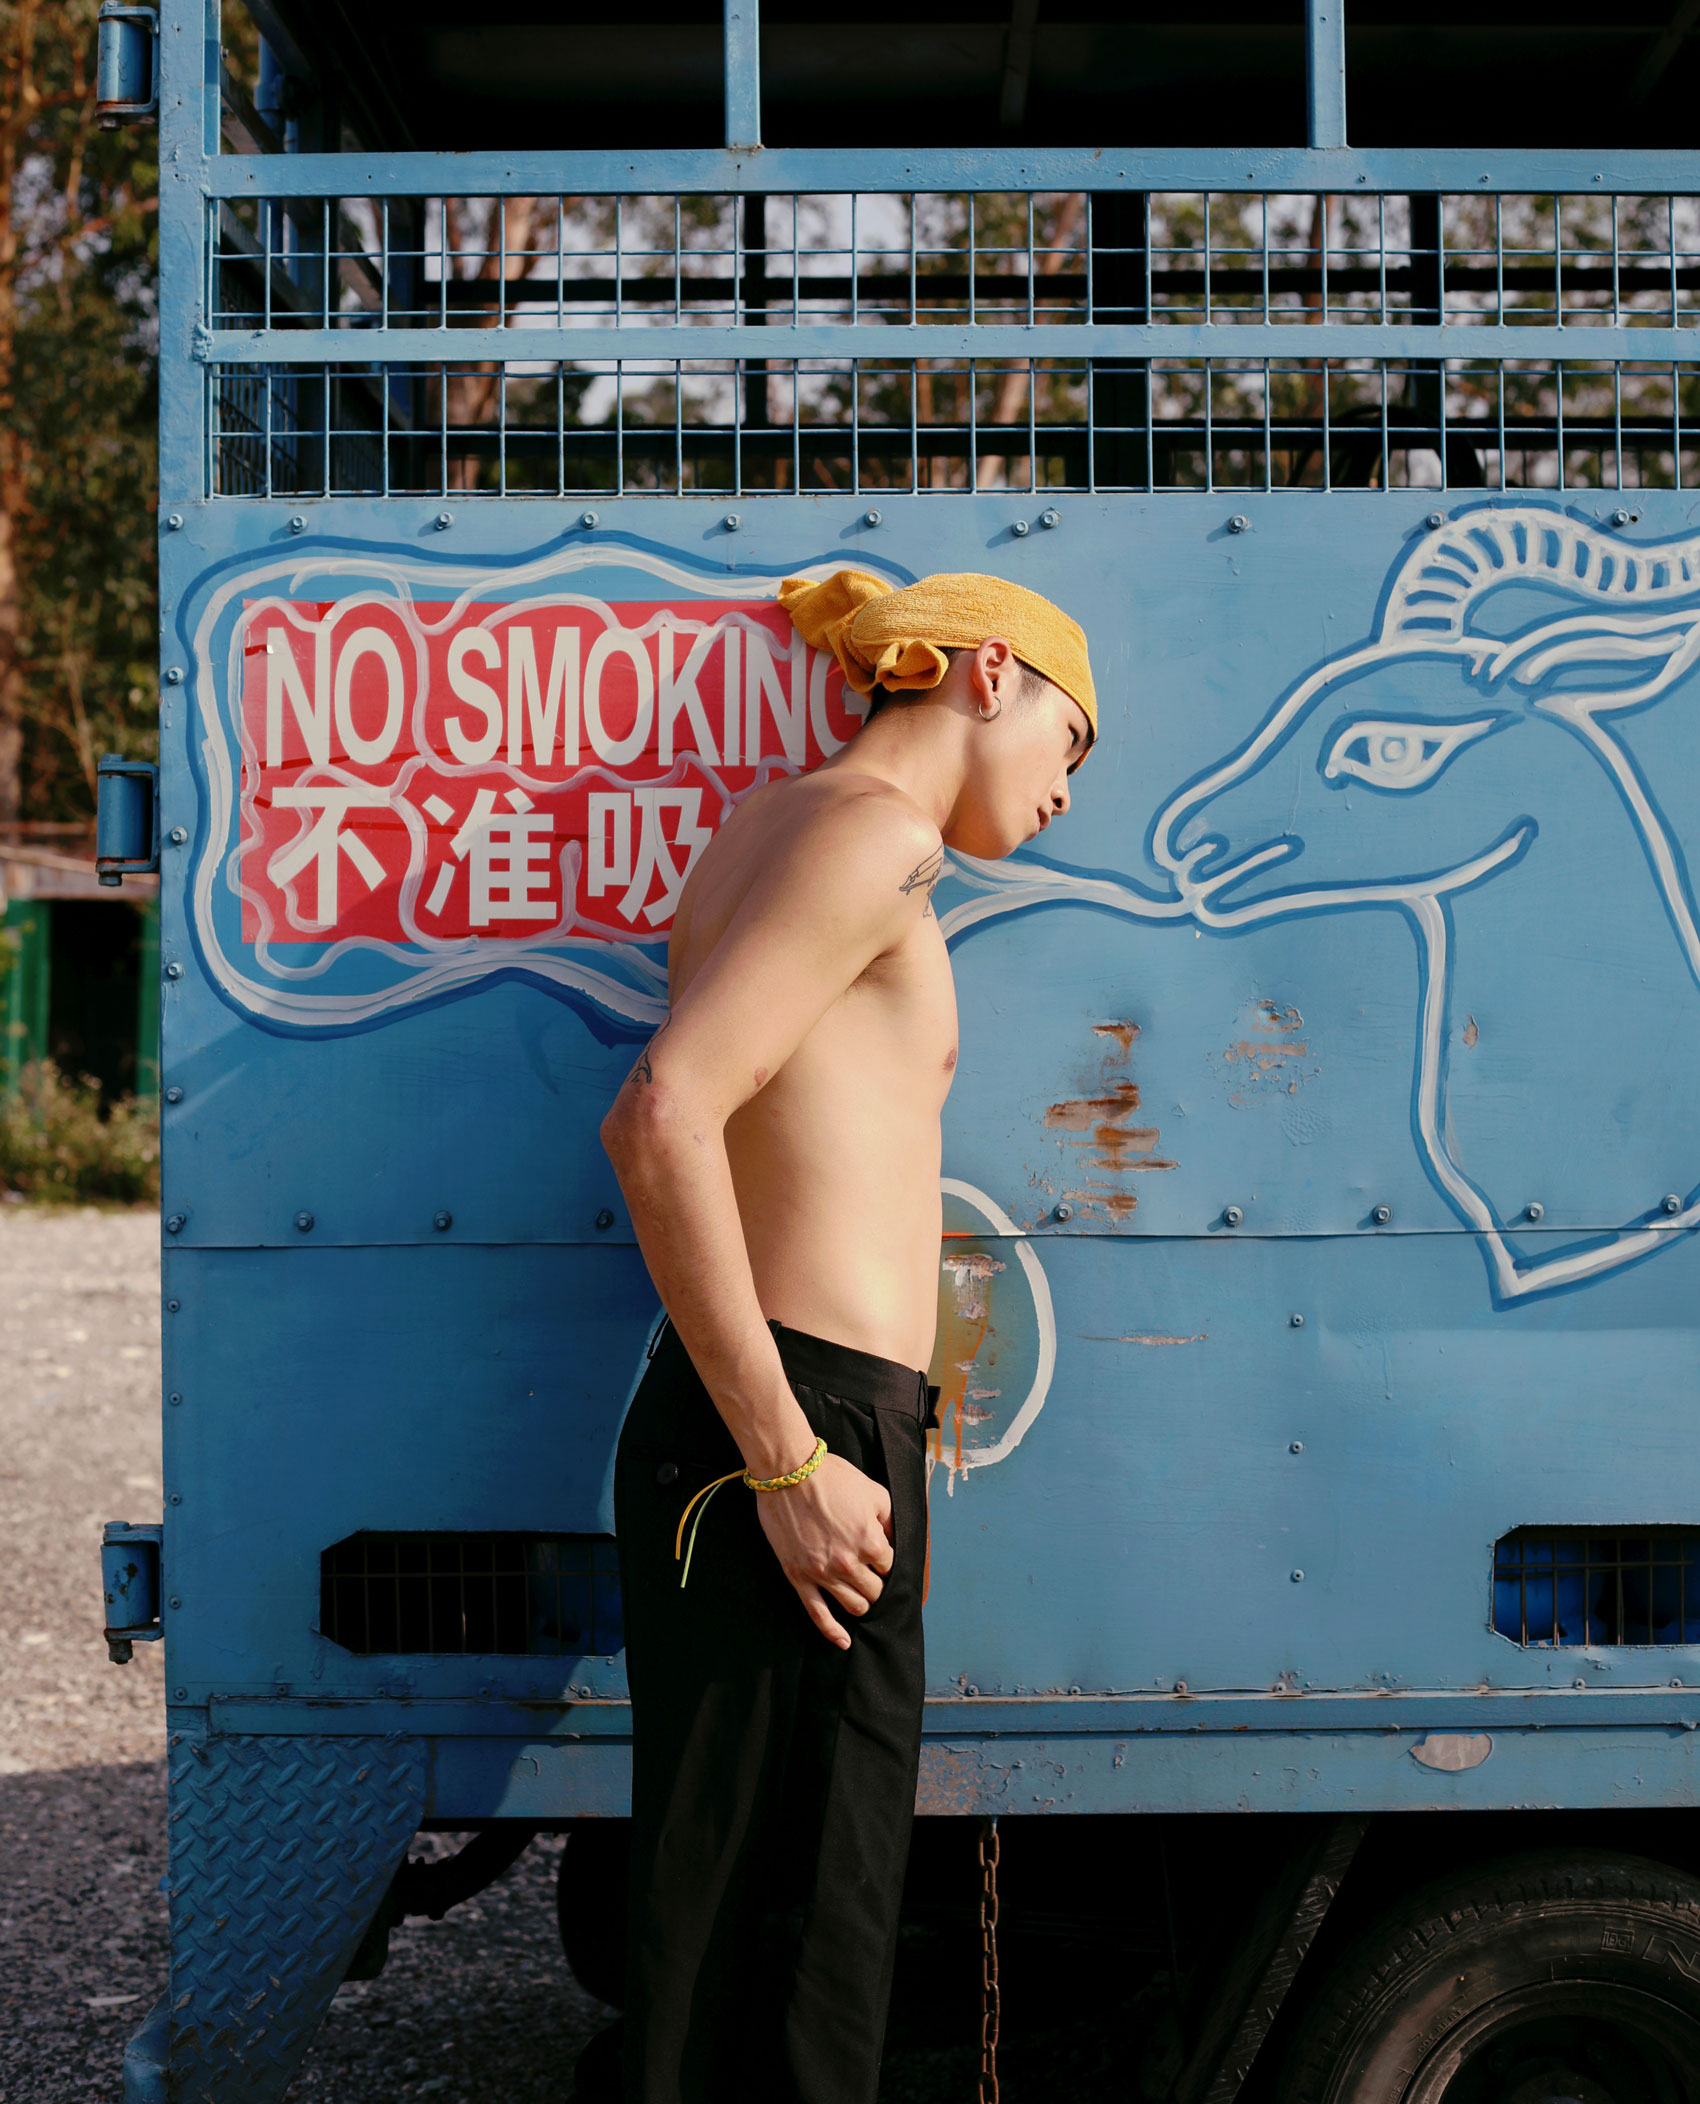 a young man wearing black trousers and a yellow headscarf leans sideways against an old blue truck